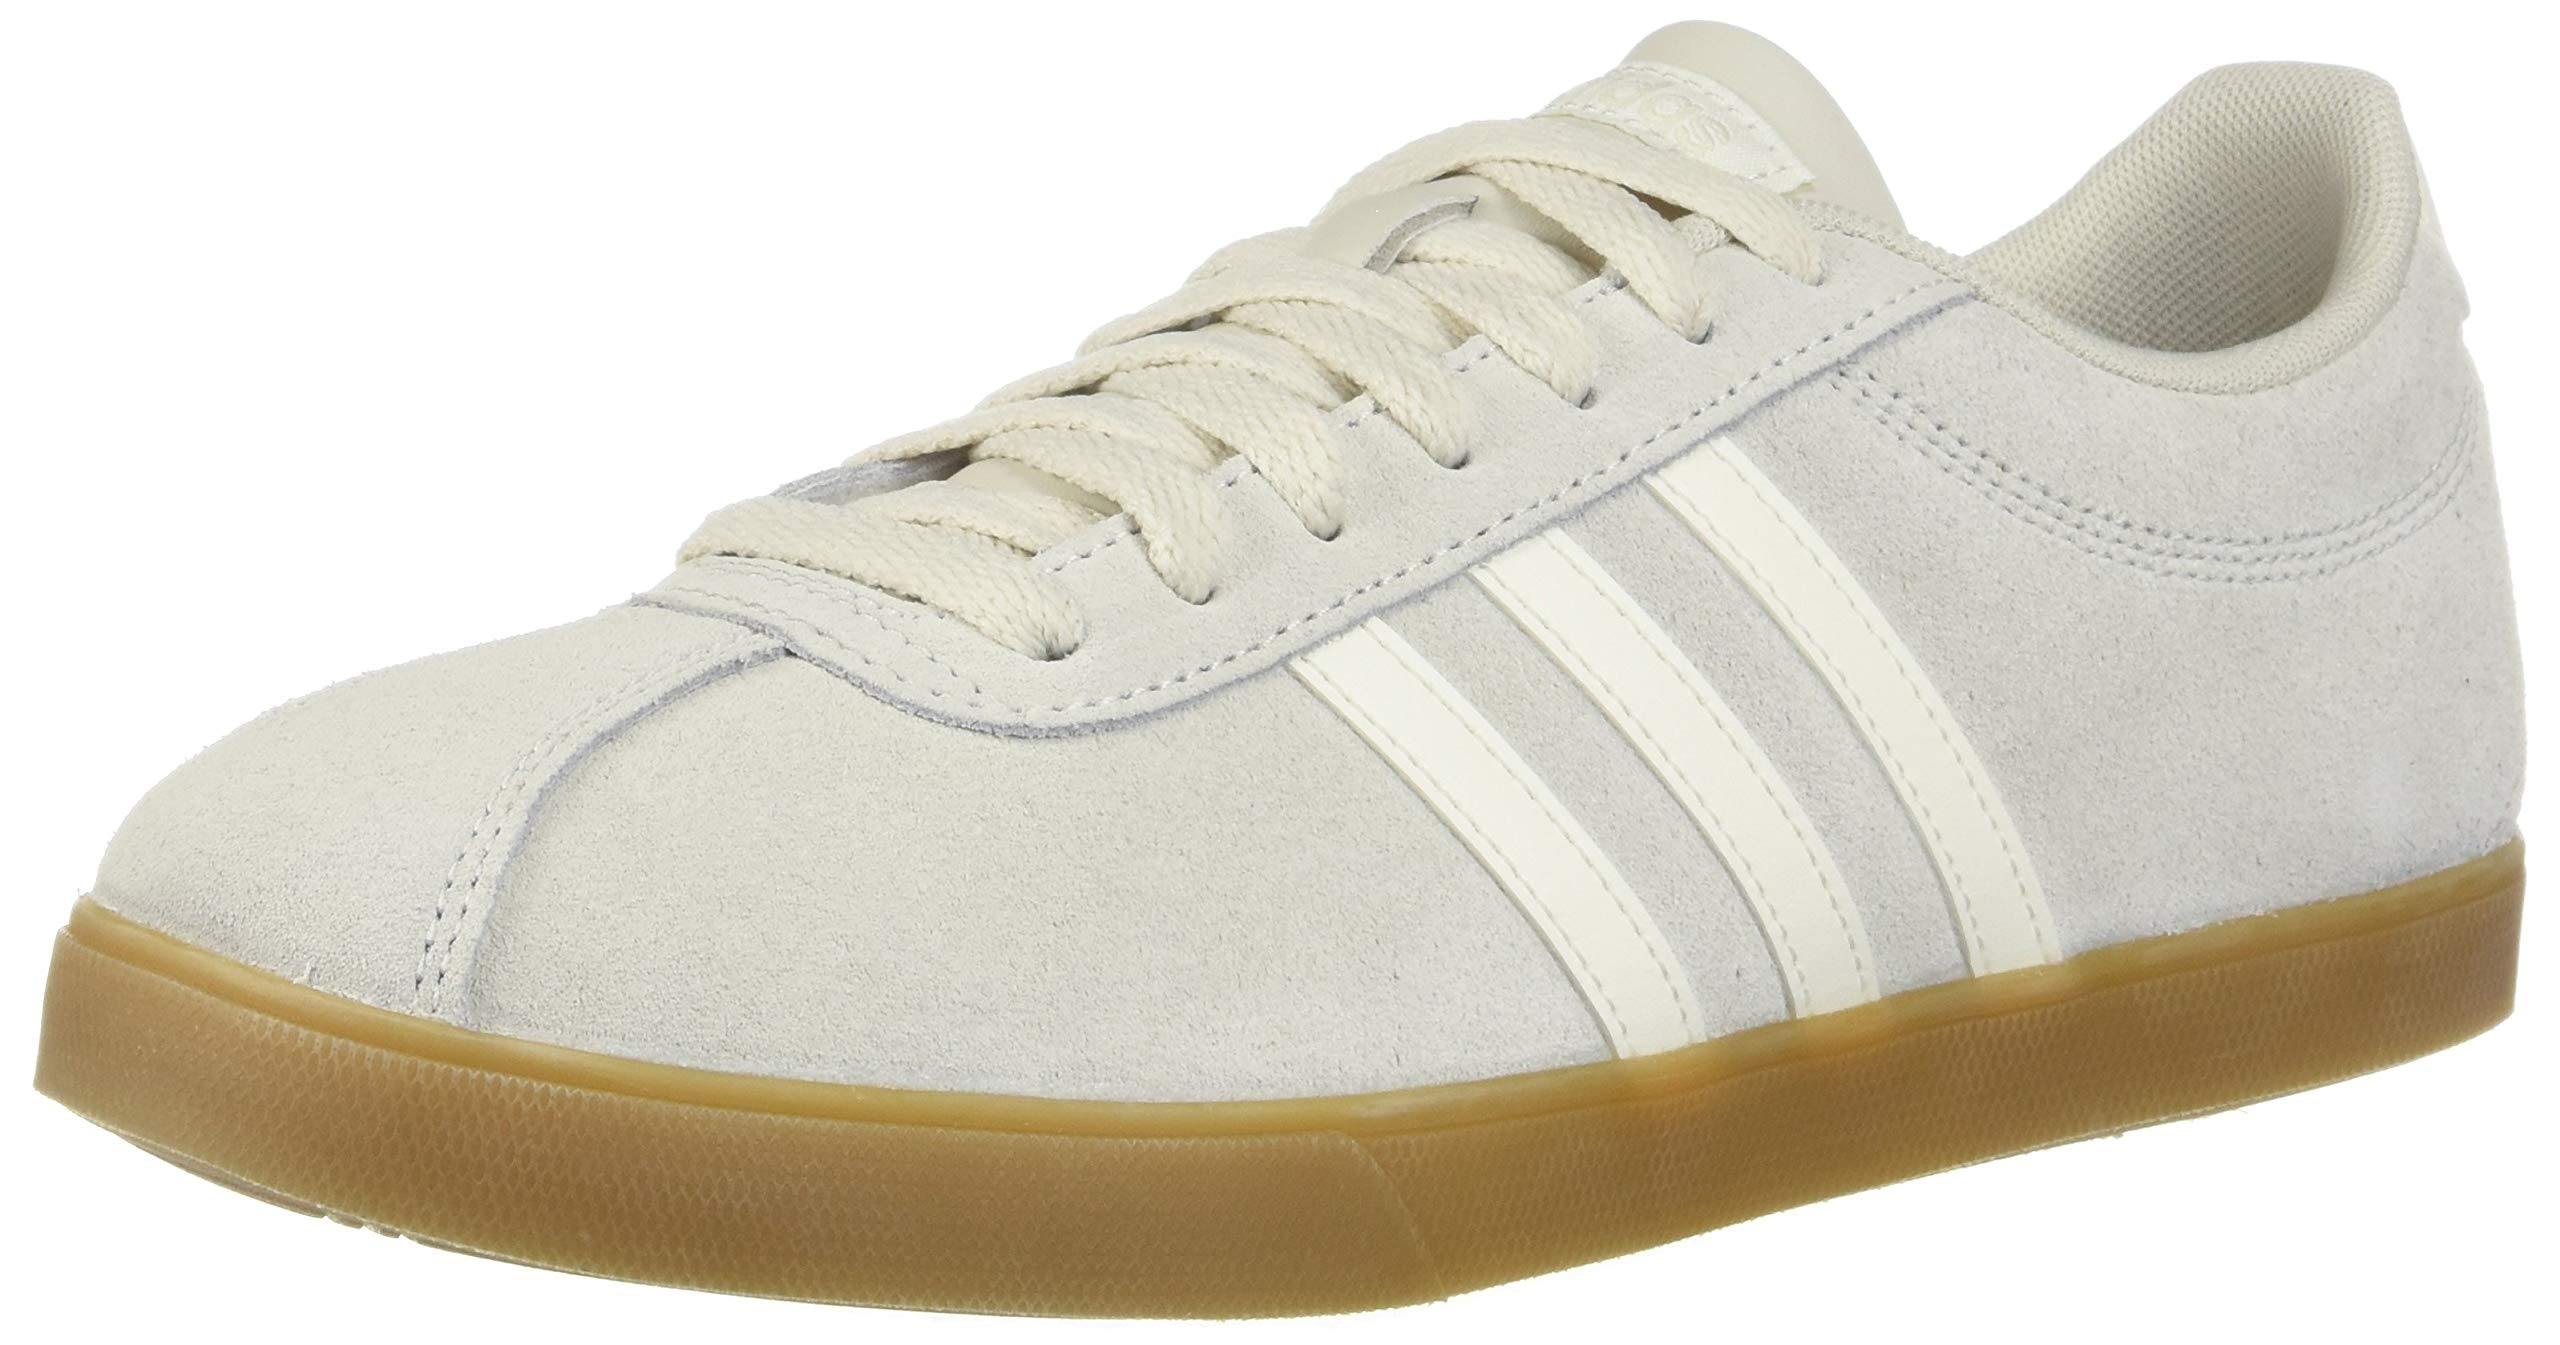 adidas Women's Courtset, raw Cloud White/Gum, 9.5 M US